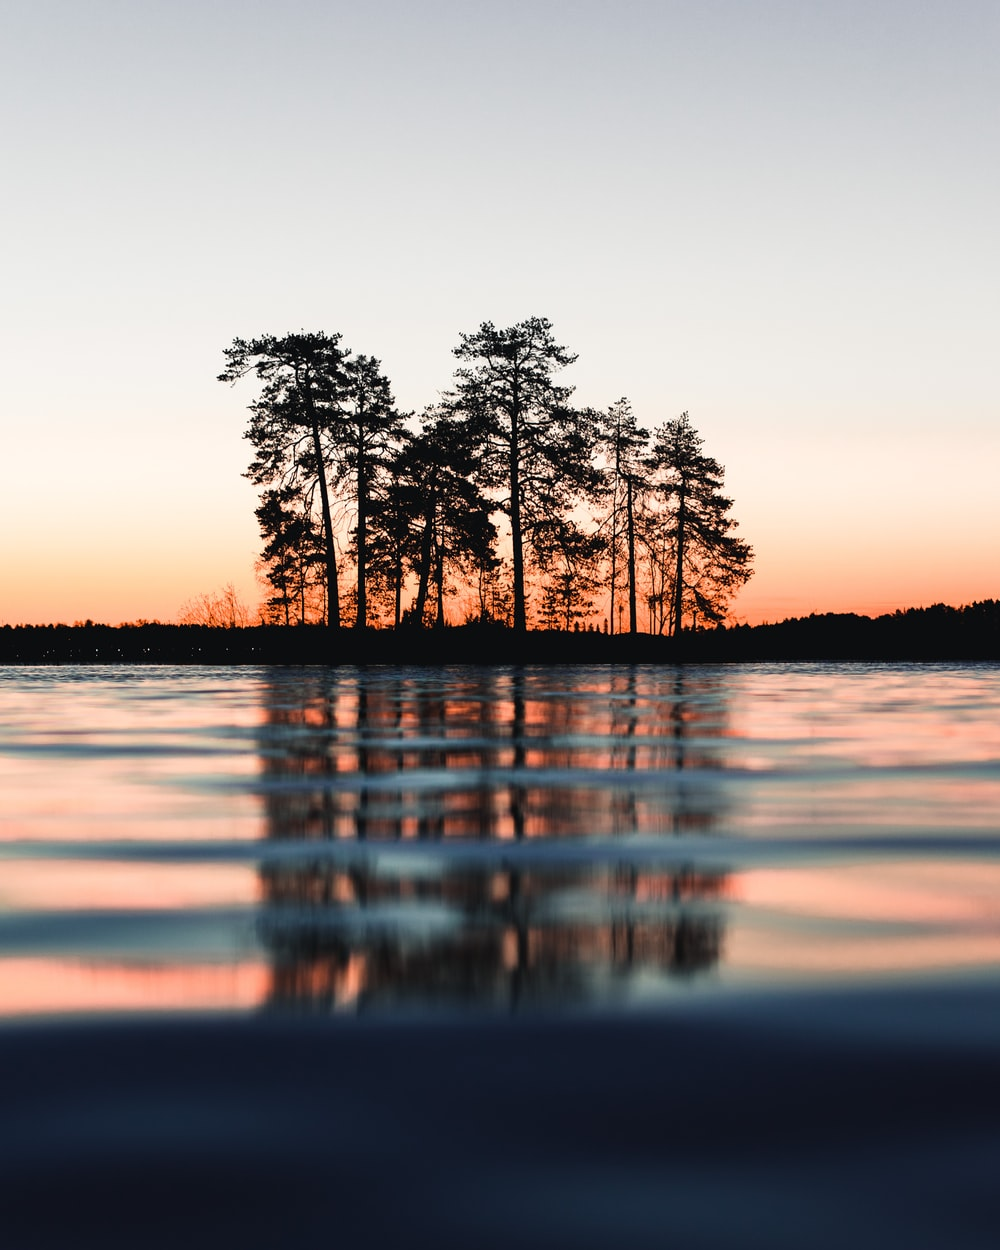 silhouette of trees between body of water and sky